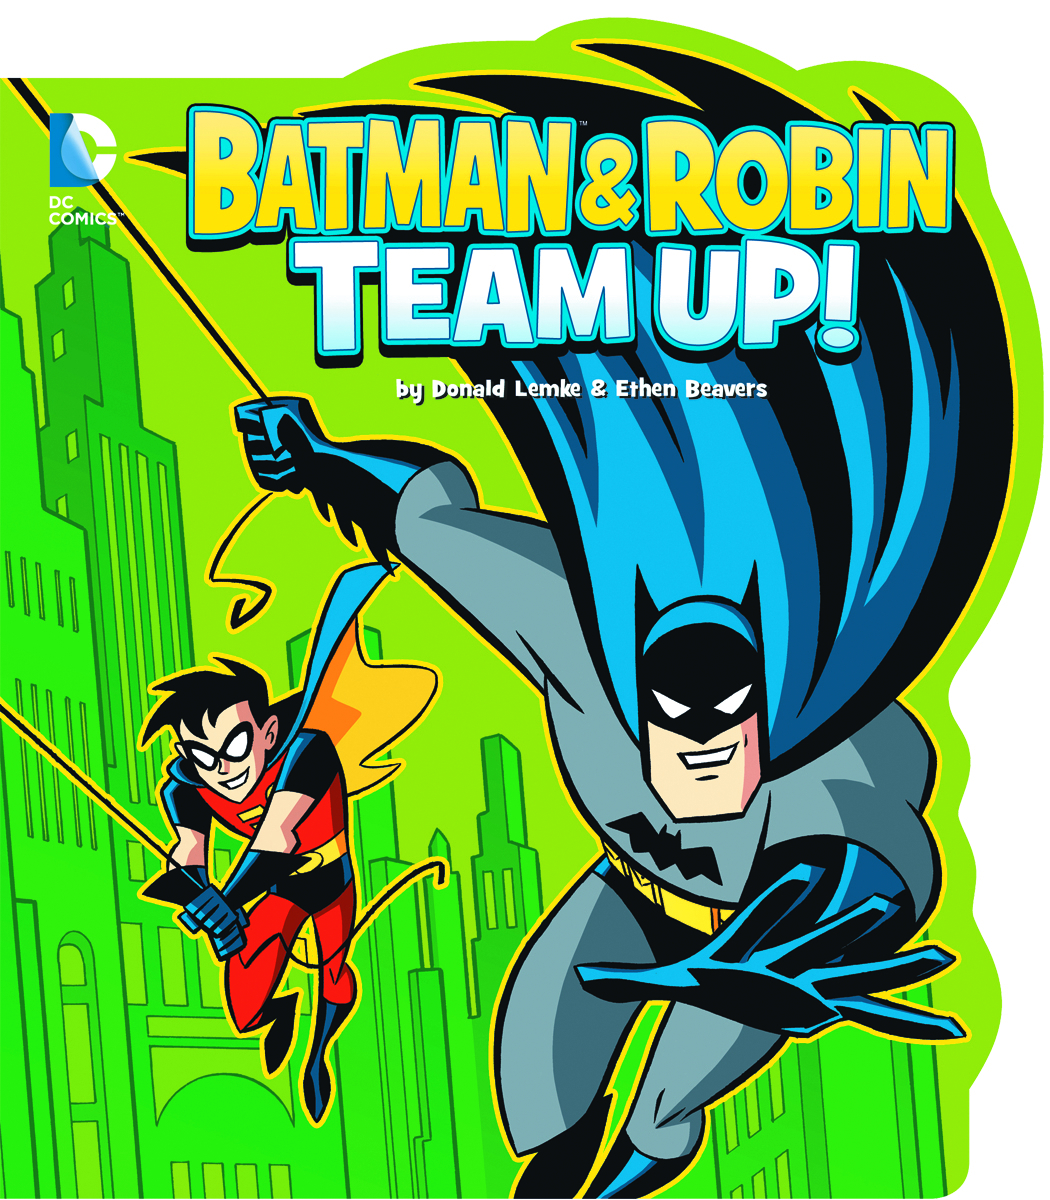 DC YR BOARD BOOK BATMAN & ROBIN TEAM UP